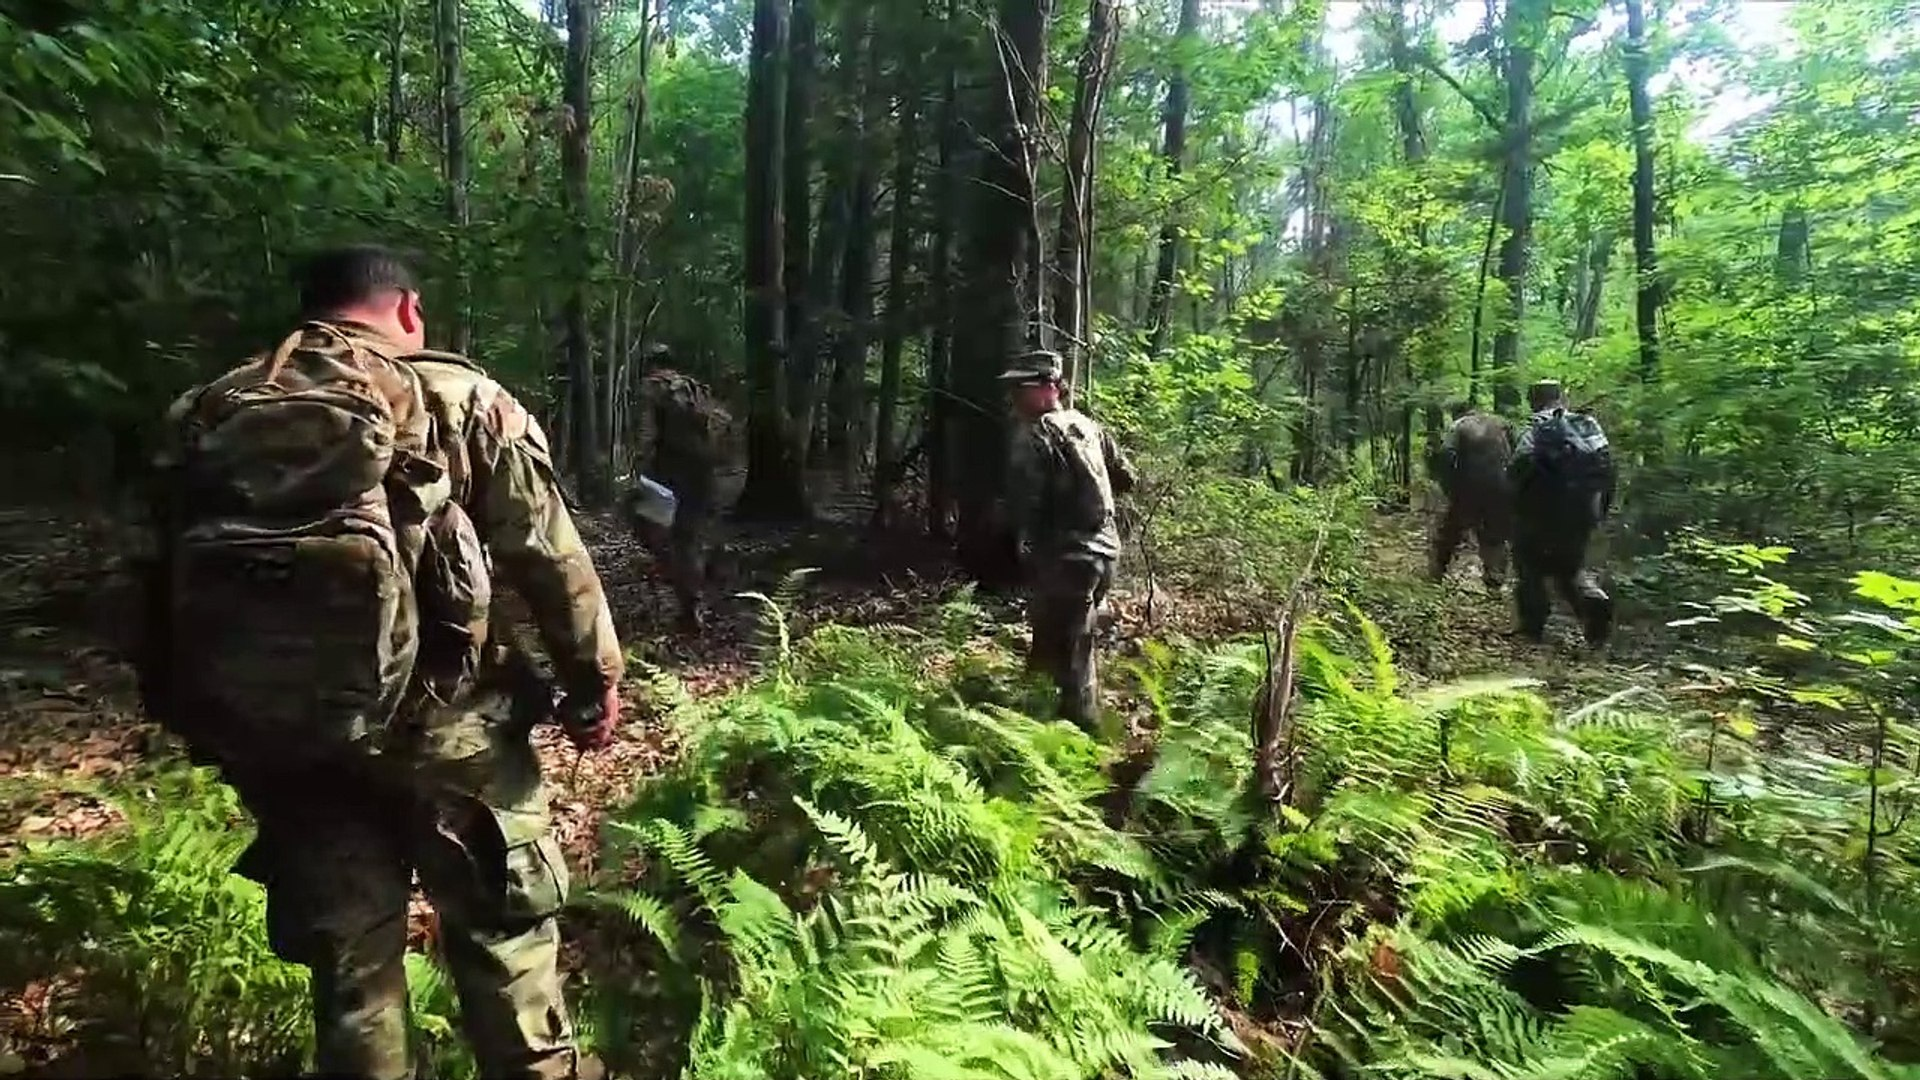 U.S Army • 1-126th Aviation Battalion • Recovery Exercise • East Greenwich, R.I. USA